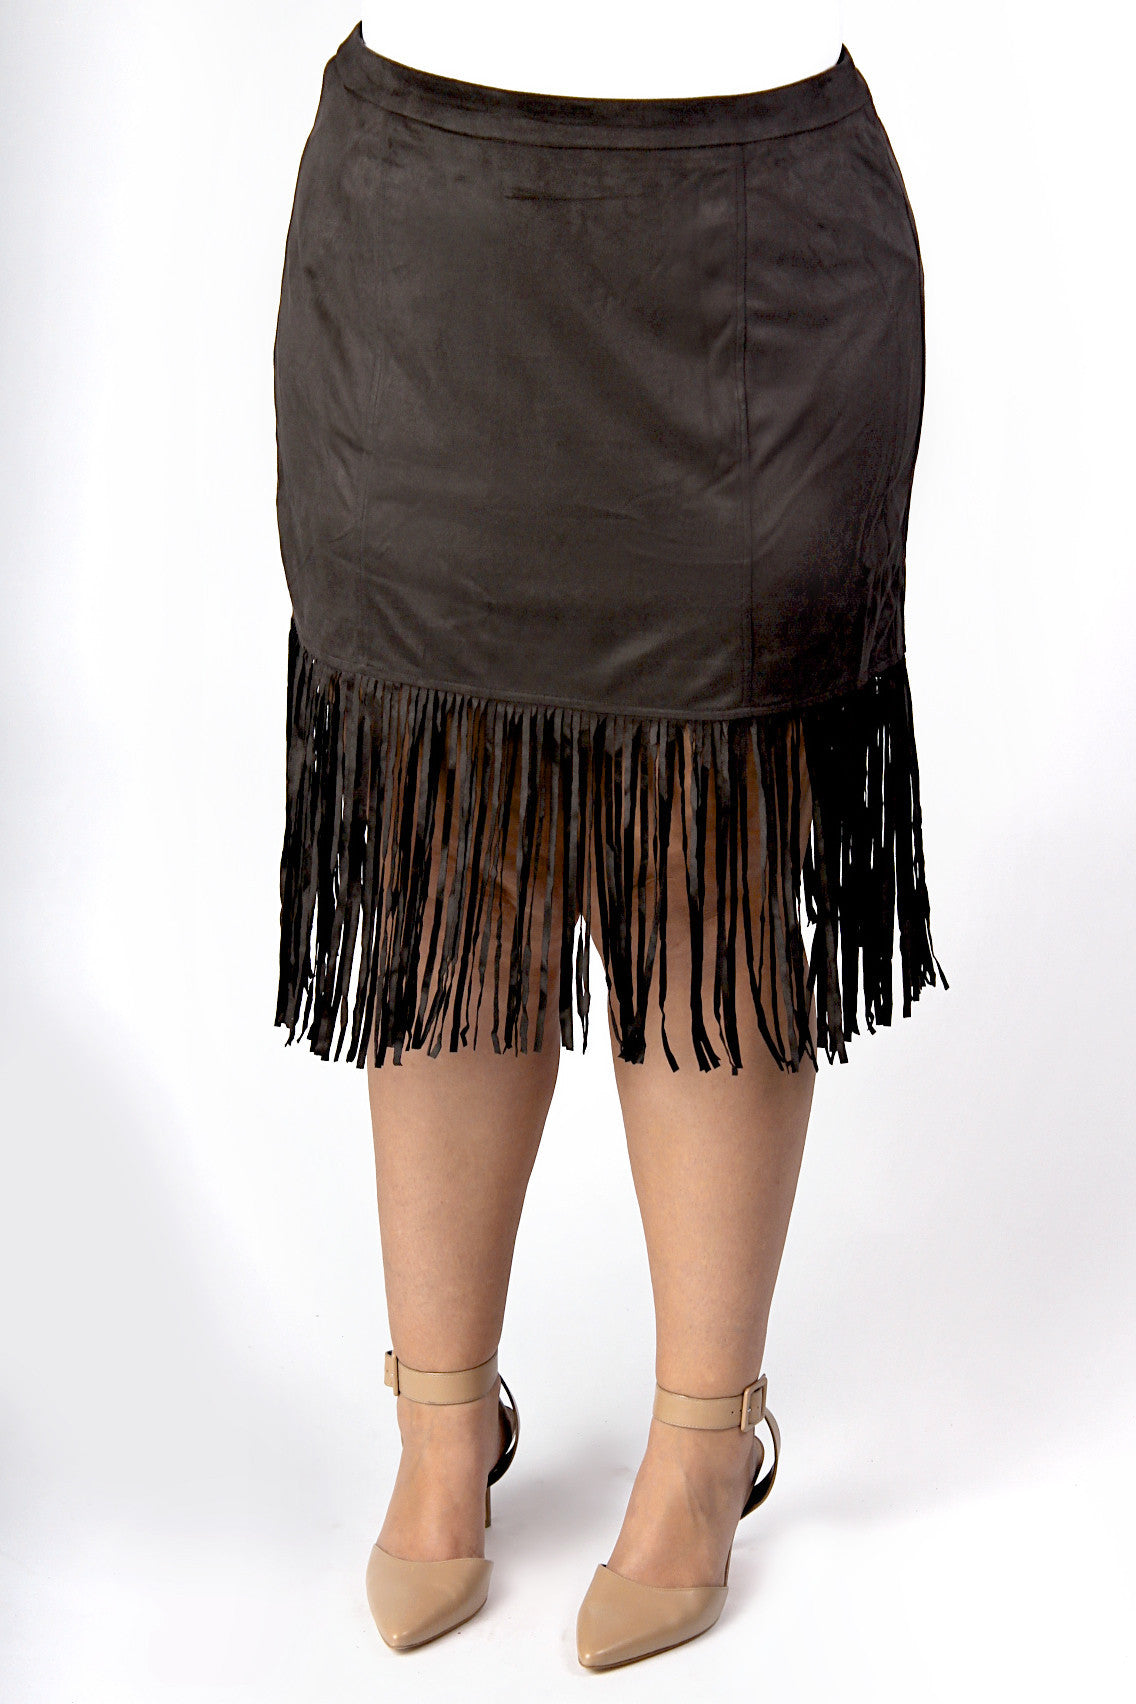 It's safe to say suede is having a moment, but we aren't complaining, and this fringe skirt is definitely feeding our obsession. With the fit of a pencil skirt, but all the fun of Sonny and Cher, this skirt brings the appeal of a structured fit together with the world of hippy style. We feel pretty groovy about it. Also available in caramel . 100% Polyester Hand wash cold Hang dry Imported Length Size: 12/14 29